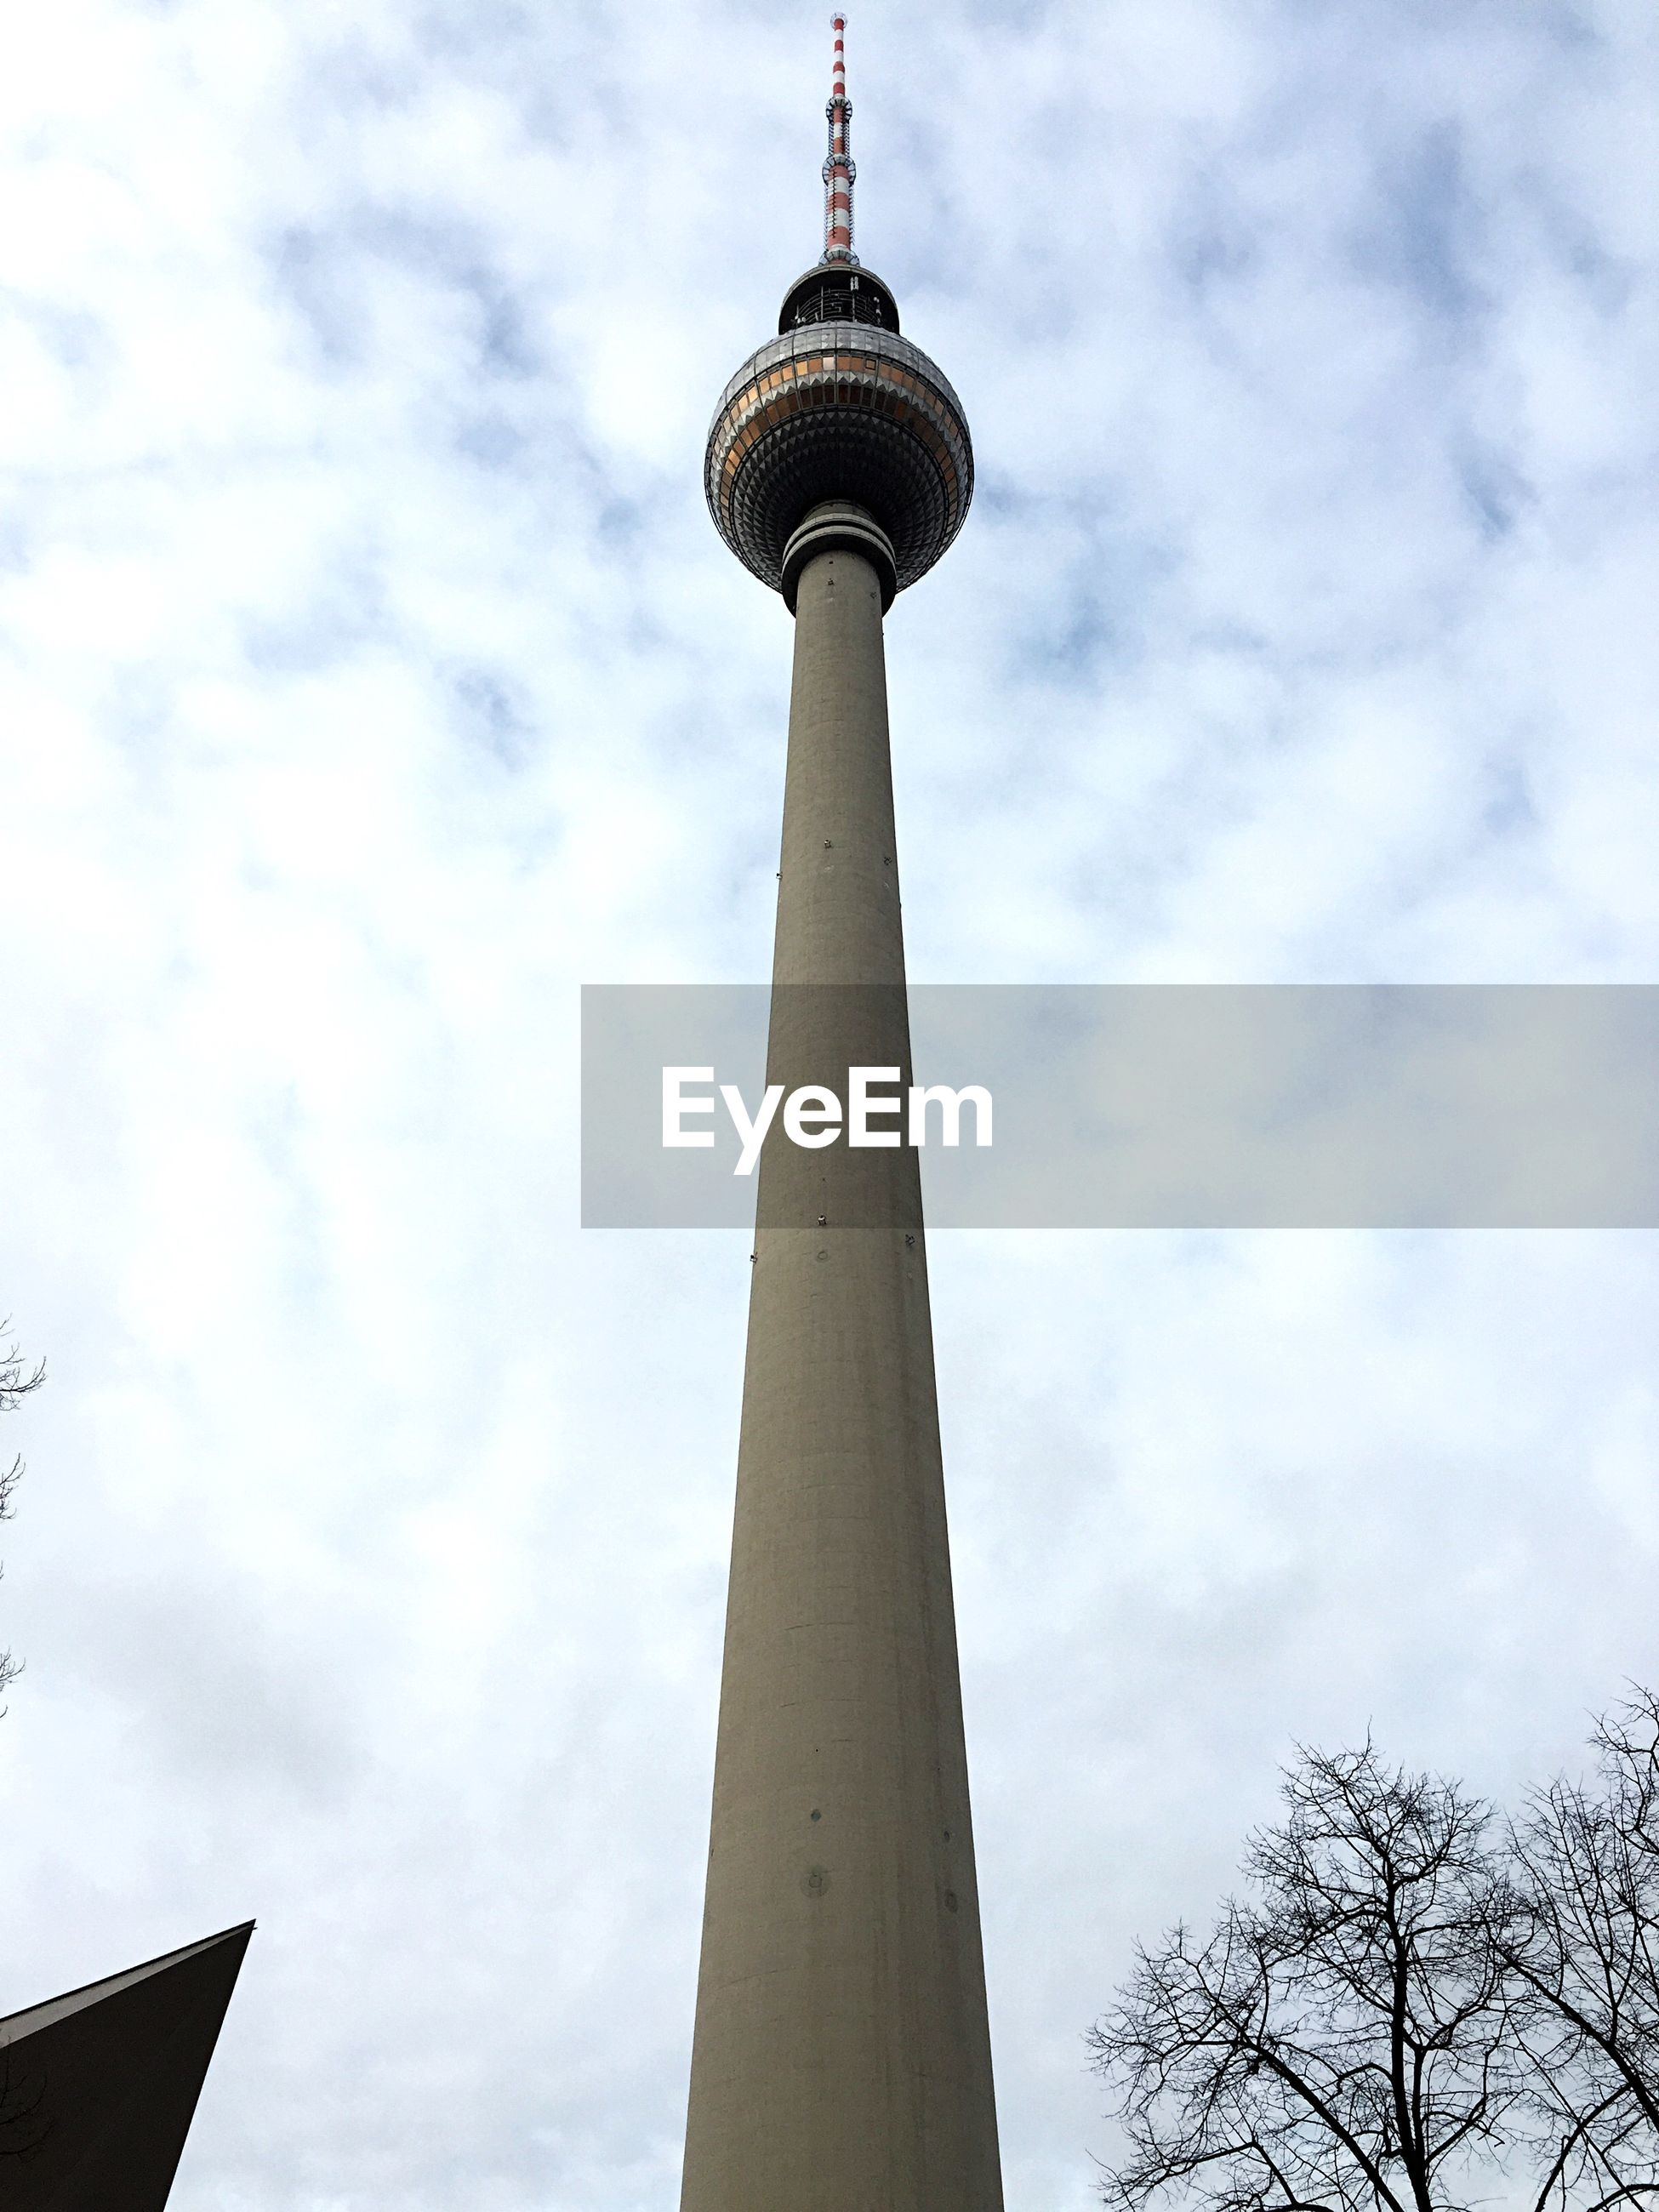 tower, tall - high, international landmark, communications tower, architecture, low angle view, built structure, famous place, sky, travel destinations, tourism, capital cities, communication, building exterior, travel, culture, cloud - sky, television tower, spire, fernsehturm